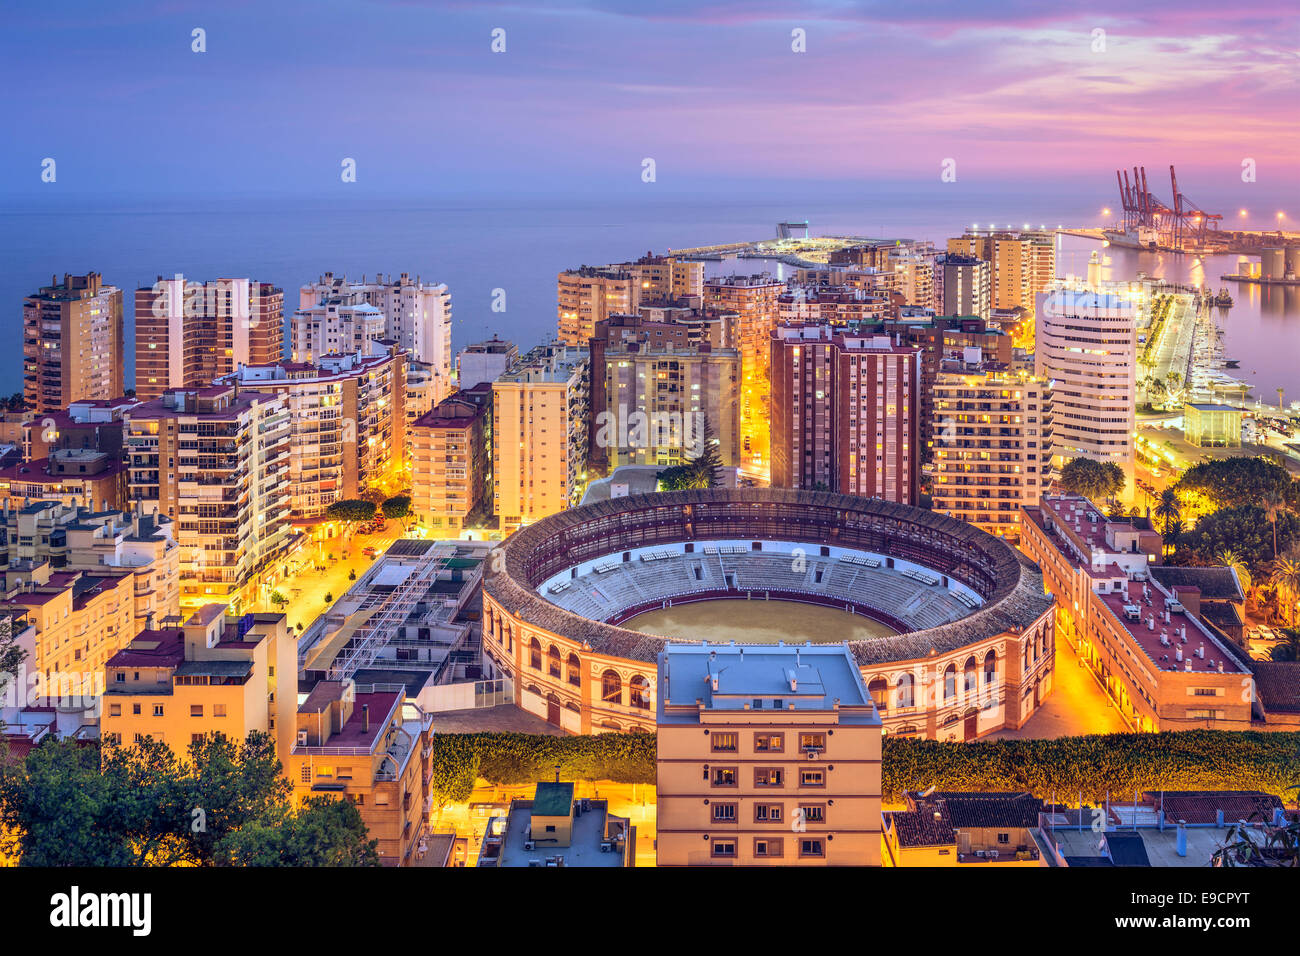 Malaga, Spain cityscape on the Mediterranean Sea. - Stock Image